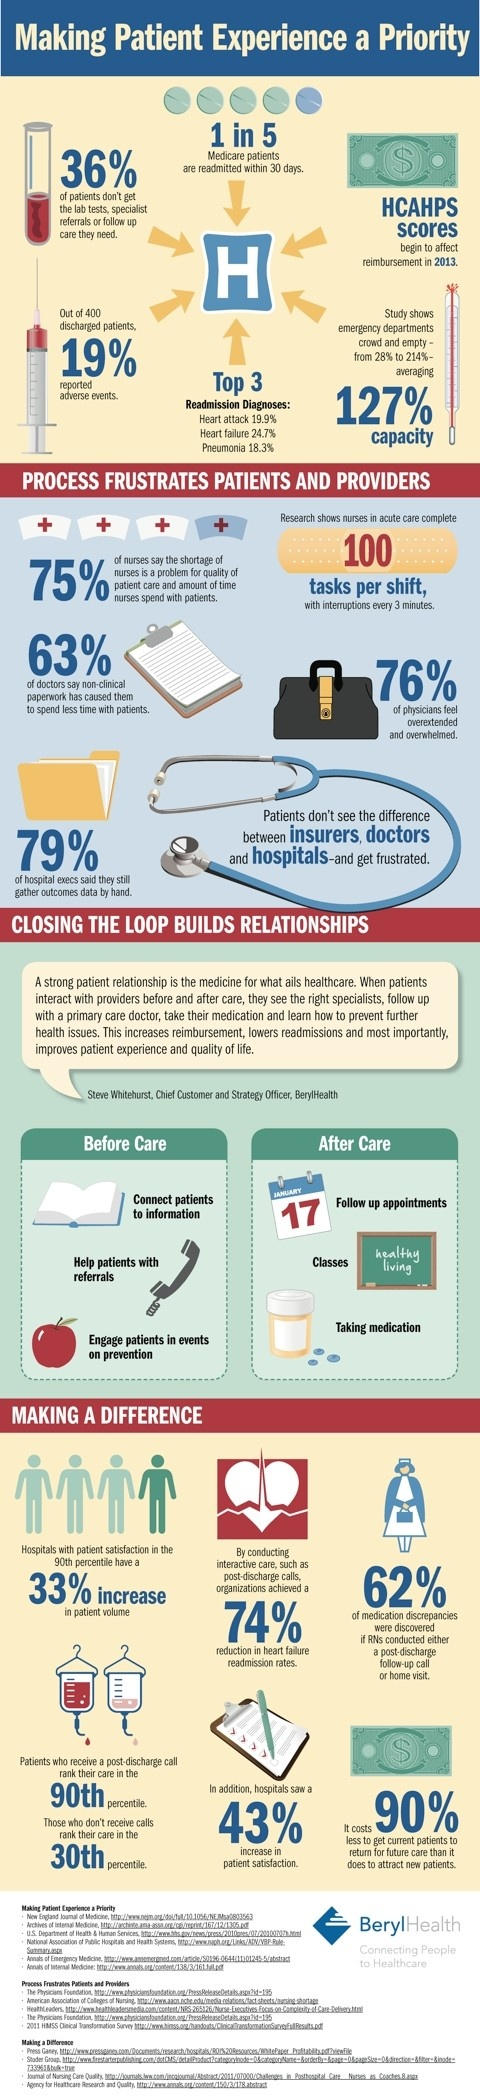 Making Patient Experience A Priority: Pharmaceut Marketing, Health Care, Ehealth Infographics, Patient Experiments, Healthcare Marketing, Priorities Infographics, Healthcare Infographics, Patient Care, Healthcare Blog